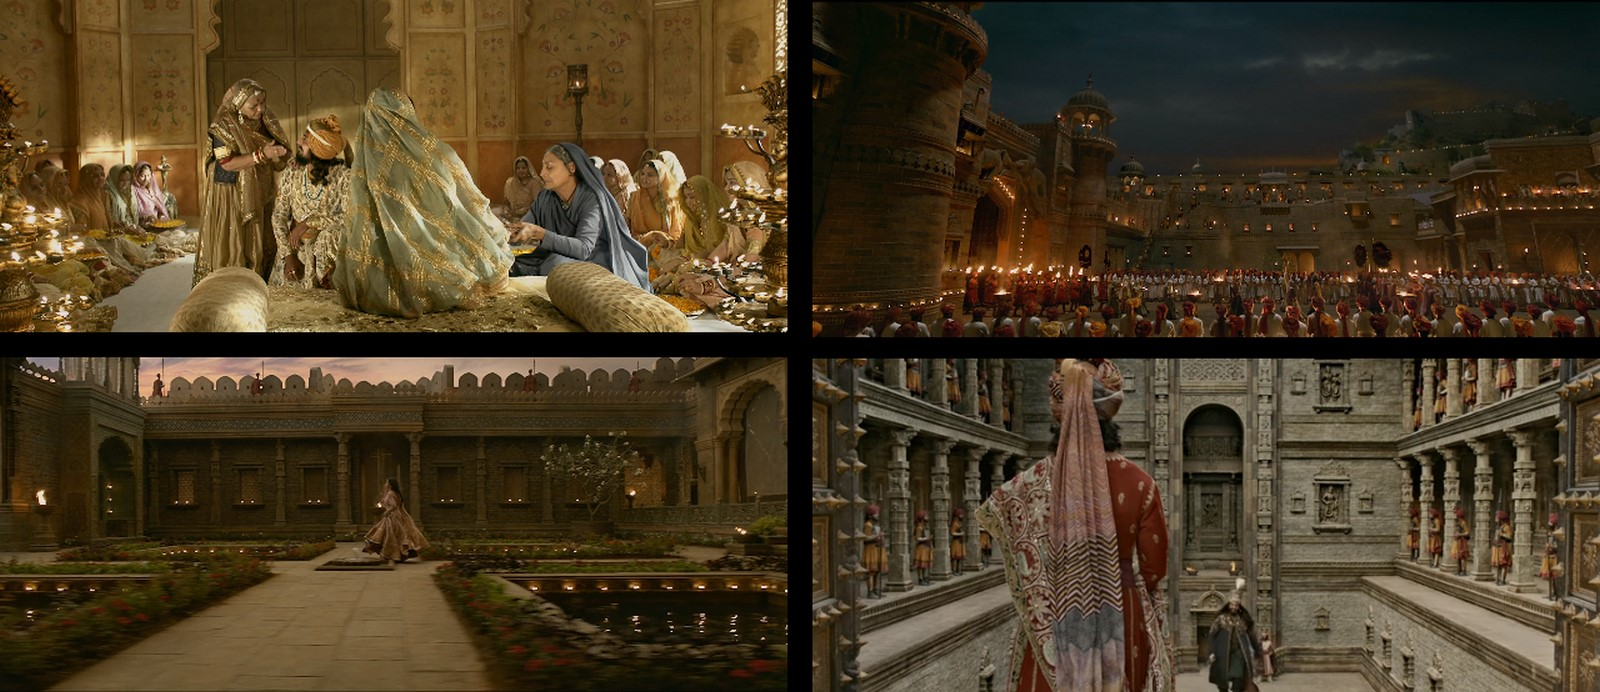 An architectural review of Padmavat - Sheet6